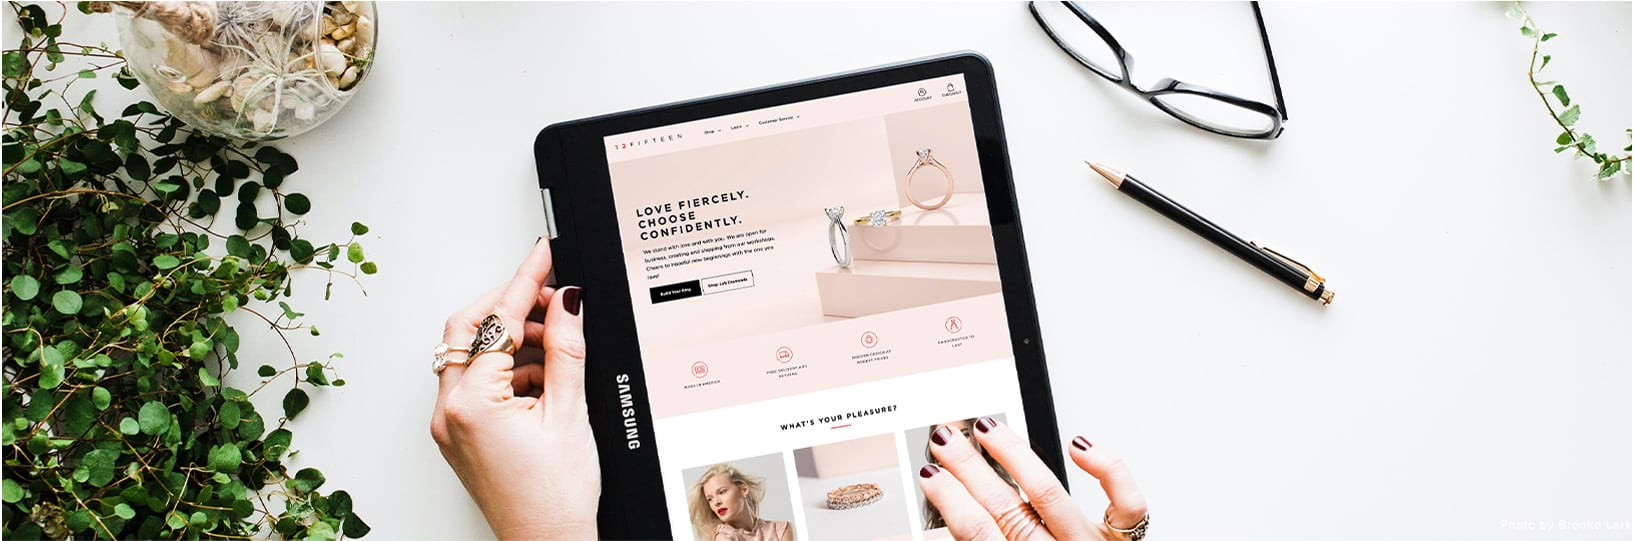 Shopping for an engagement ring online